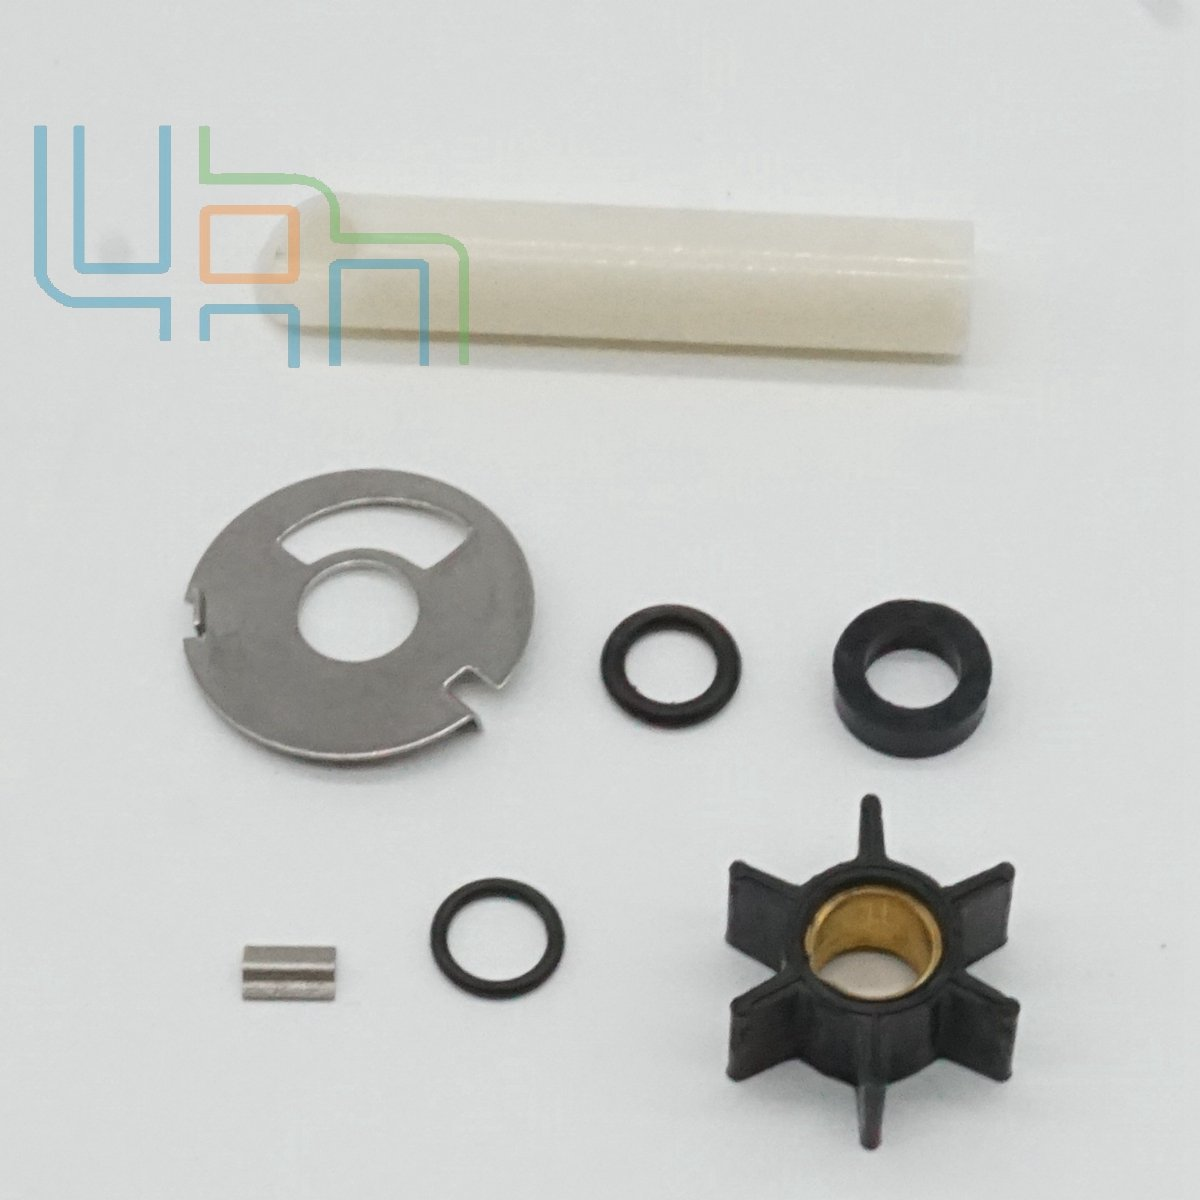 uanofcn Water pump repair kit for MERCURY 4 7.5 9.8HP with 0.456 ID 47-89981Q1 47-89981T1 by uanofcn